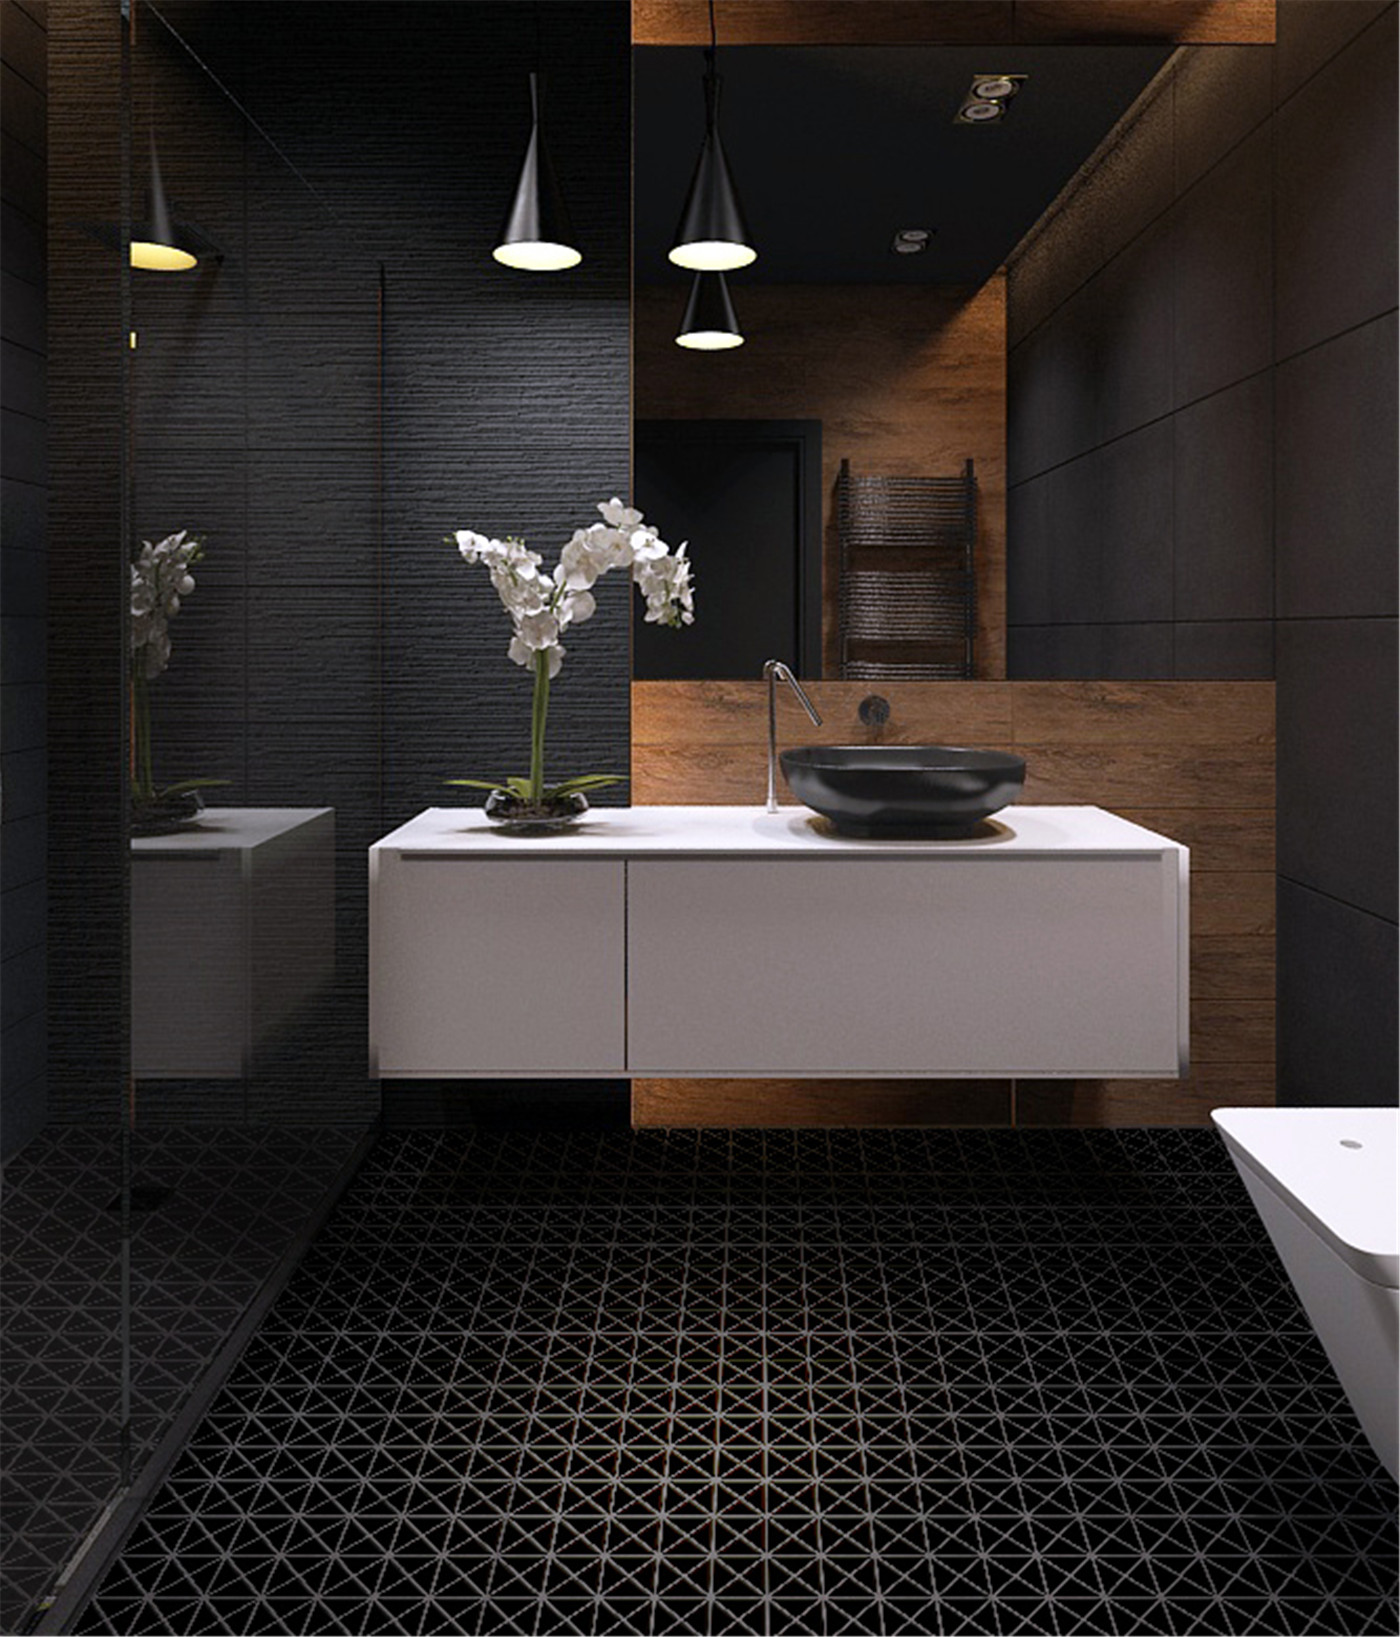 2 39 39 pure black matte porcelain triangle mosaic floor tile bathroom design ant tile Interior design black bathroom